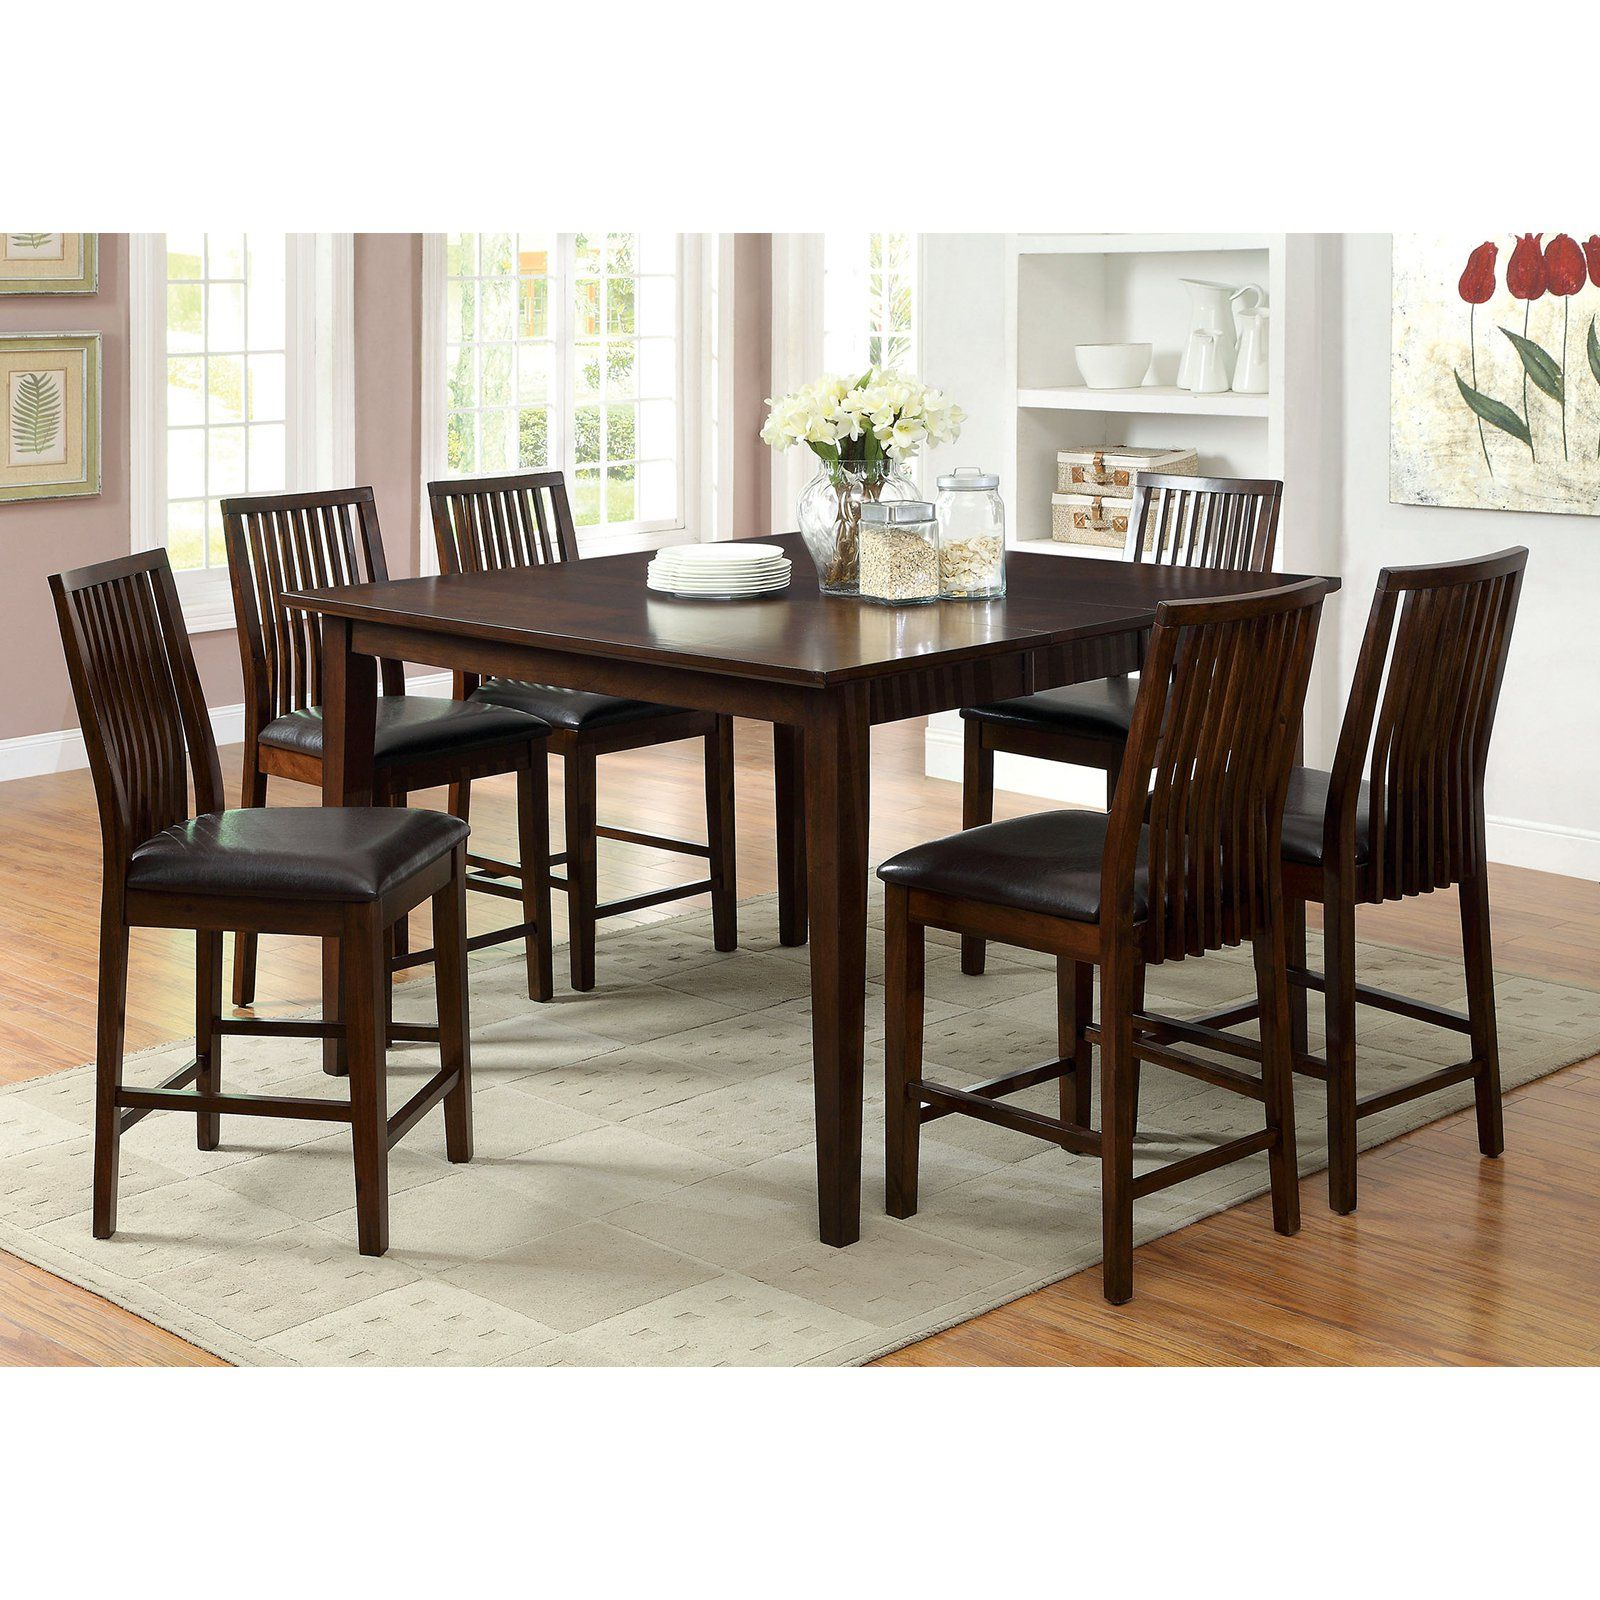 Furniture of America Alliani 7-Piece Counter Height Dining Table Set ...